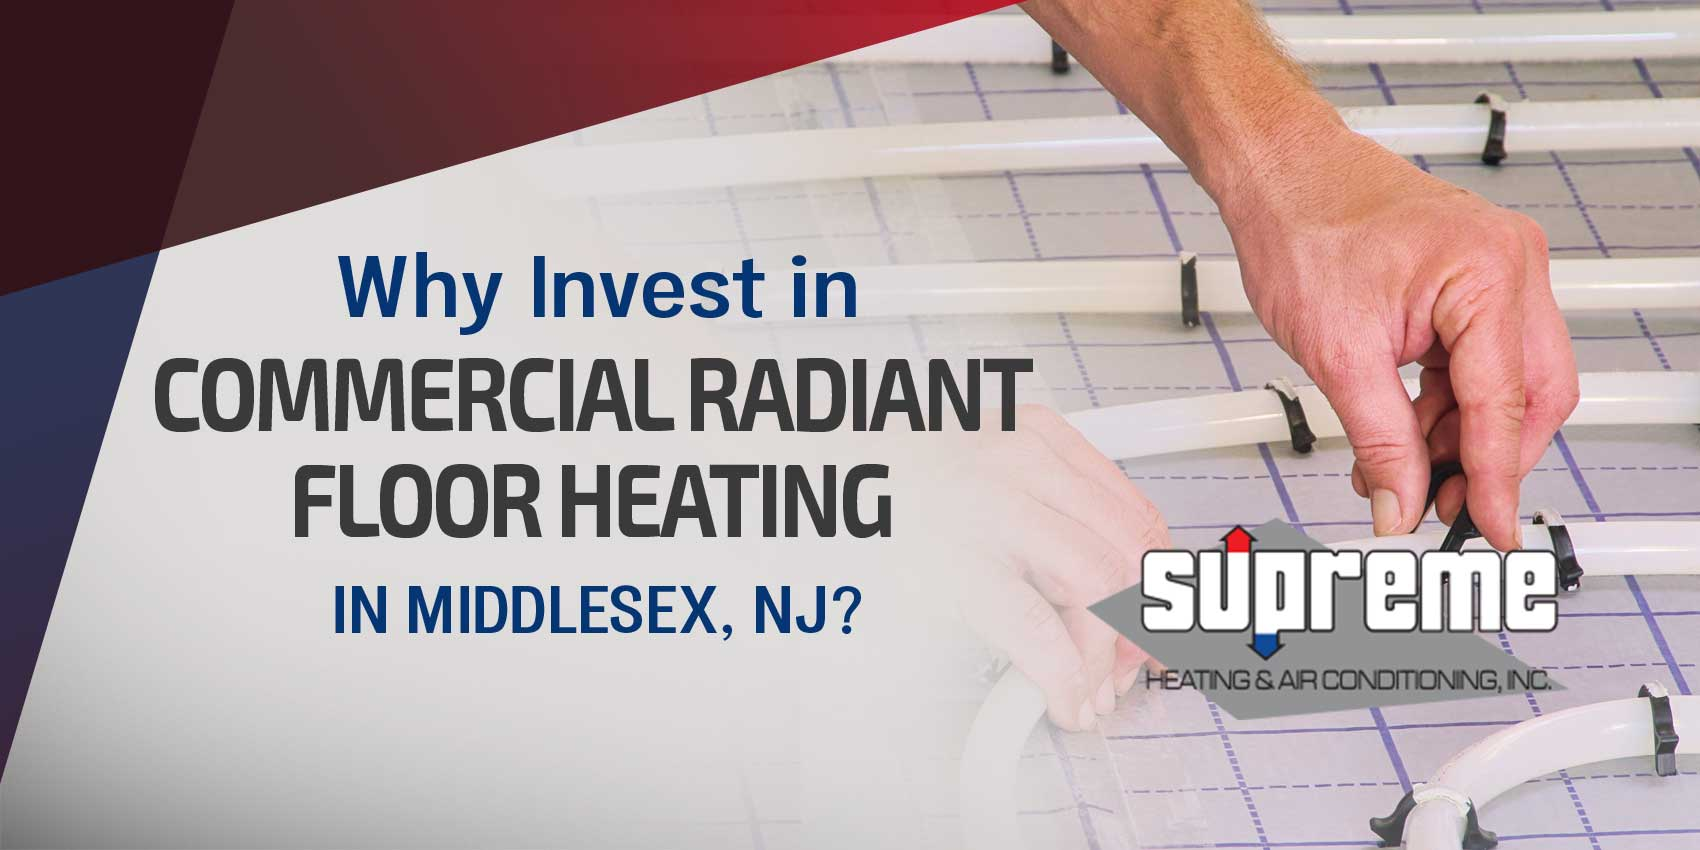 Why Invest in Commercial Radiant Floor Heating in Middlesex, NJ?